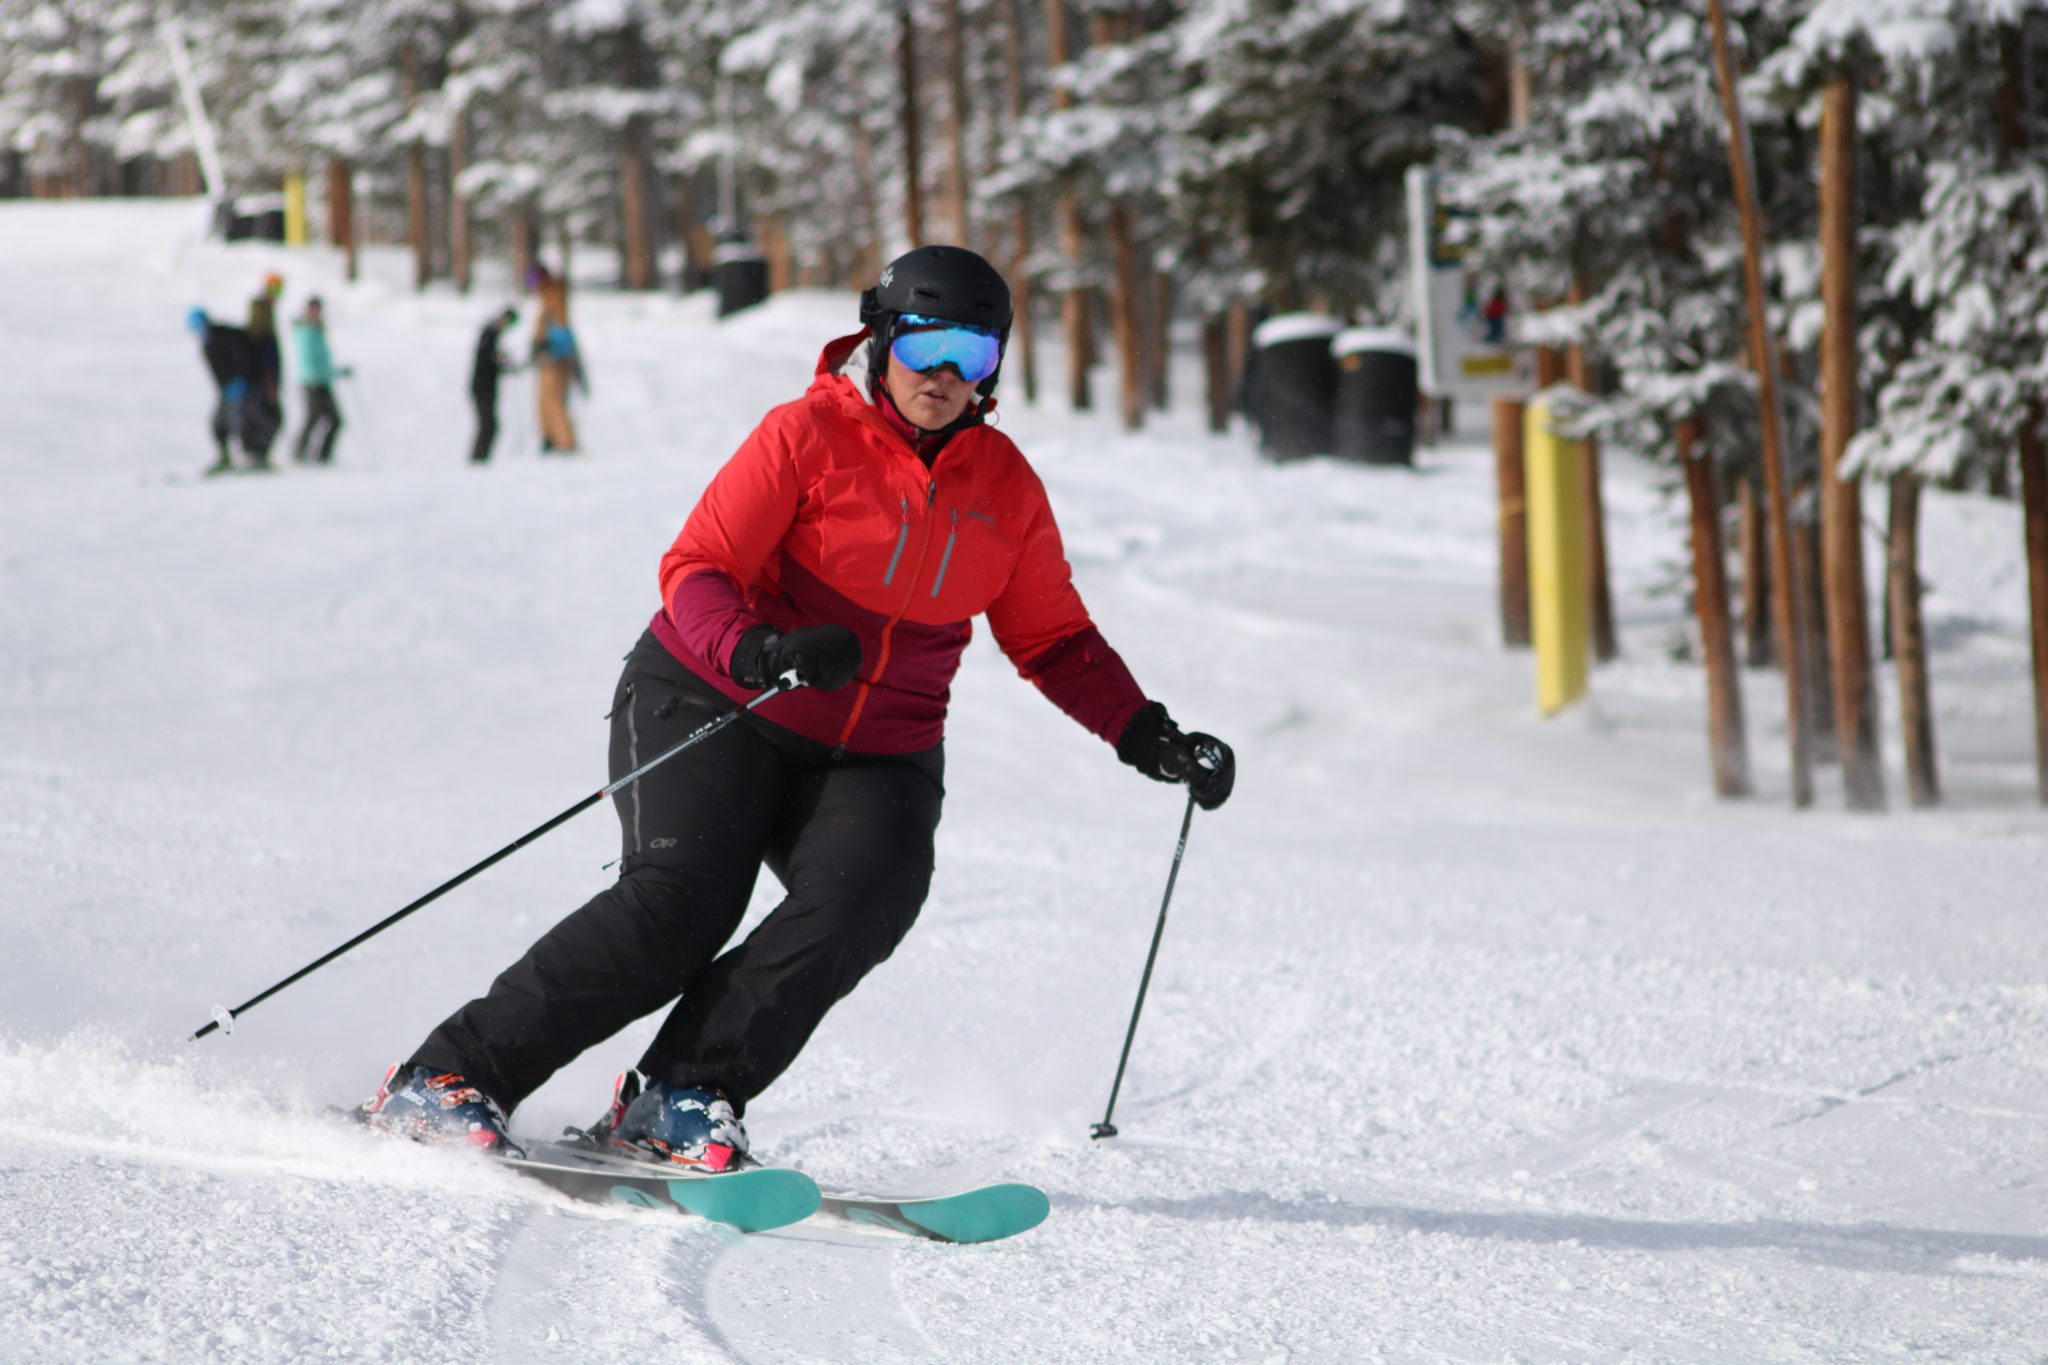 PSIA level 1 ski instructor qualification